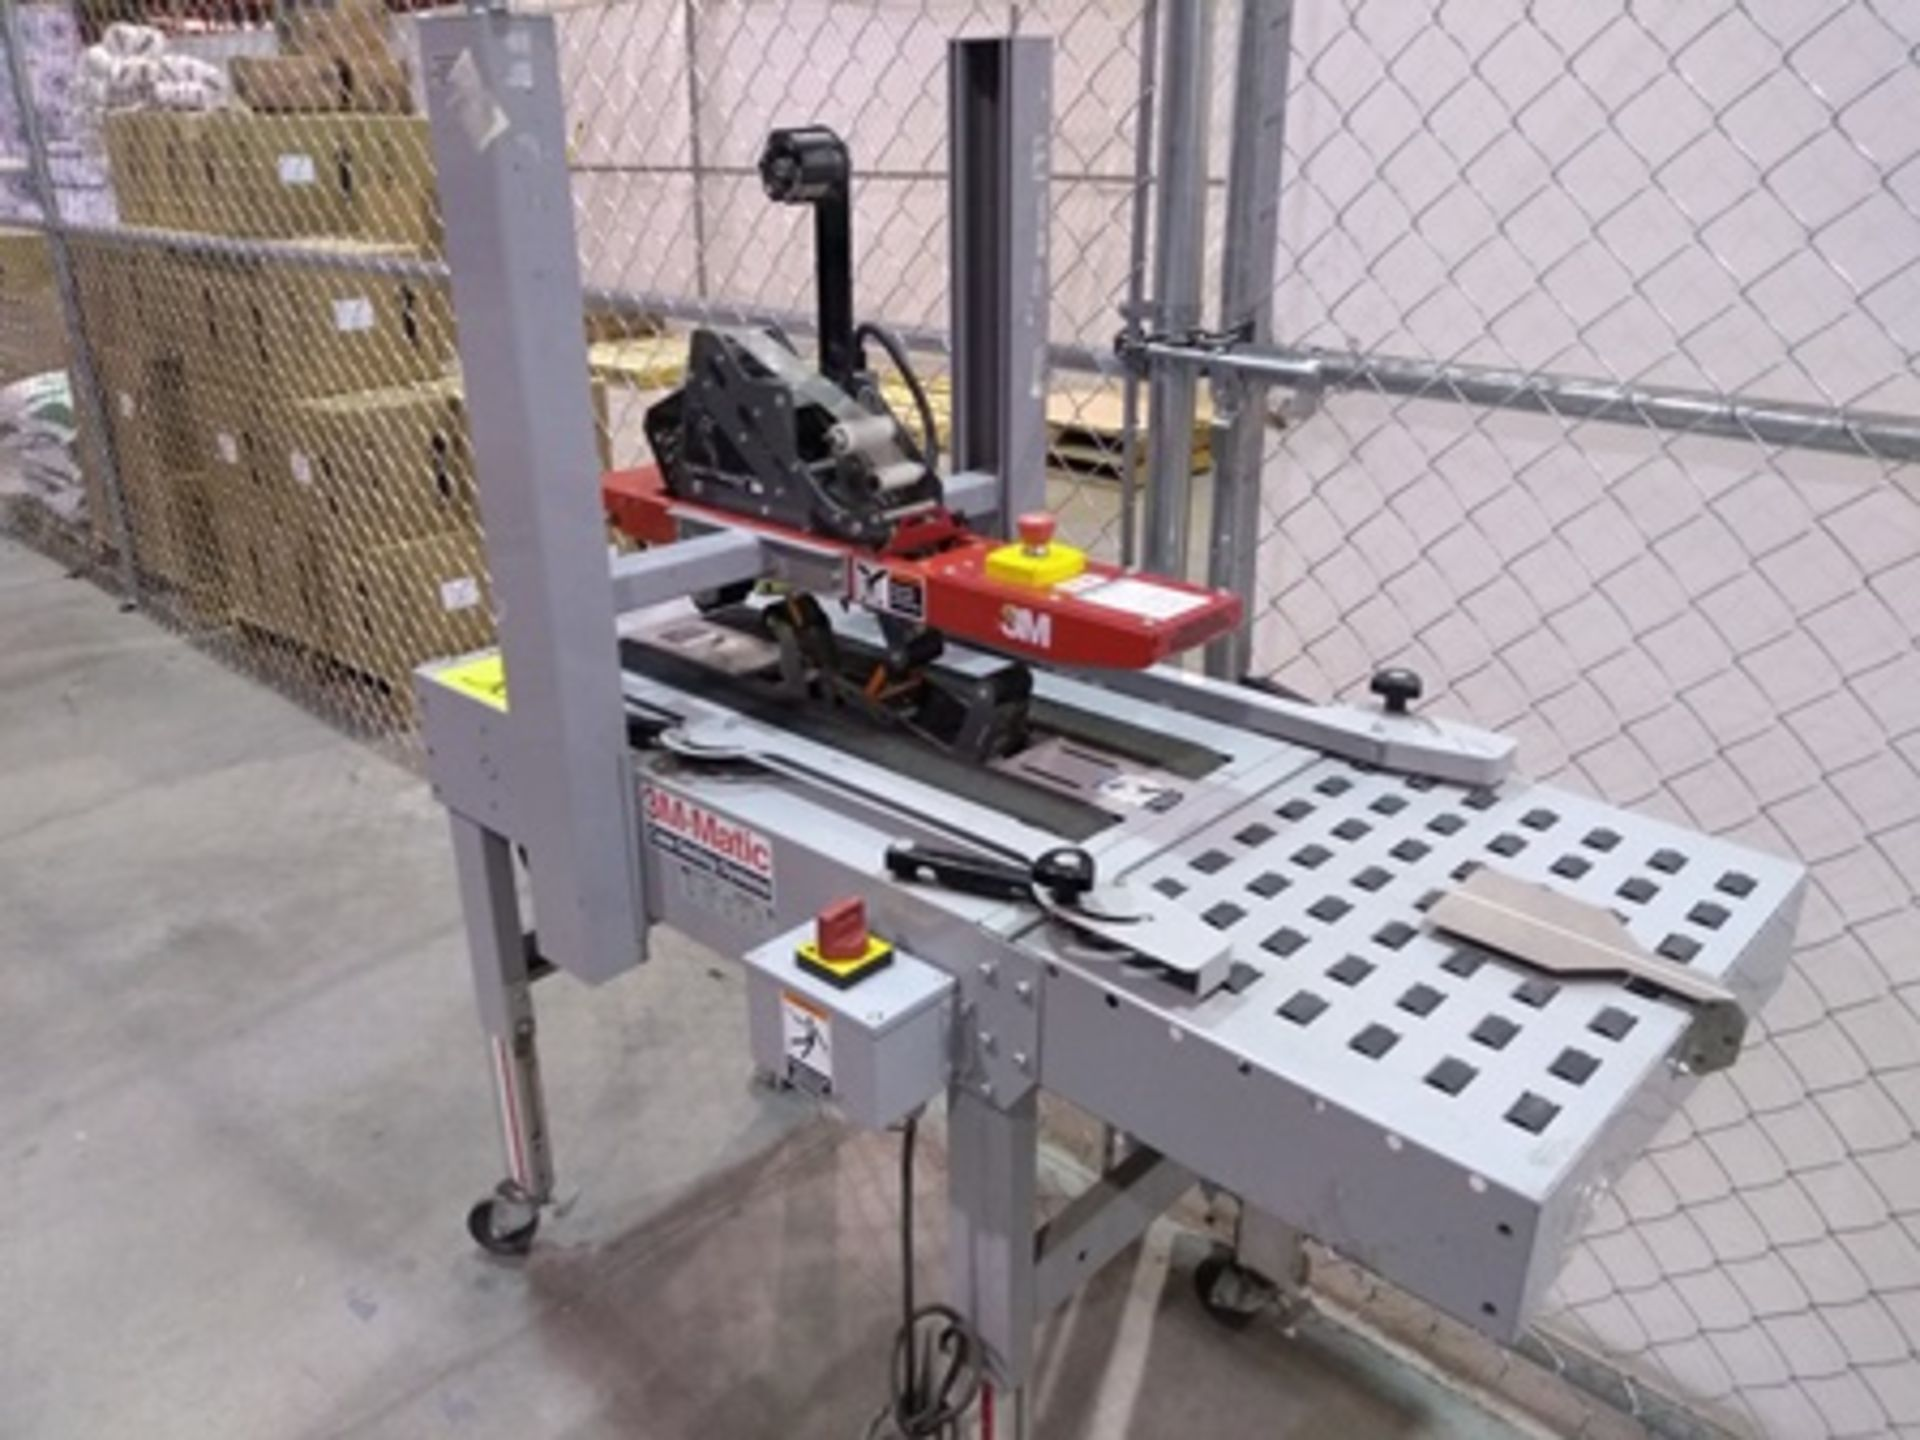 Lot 30 - 3M-Matic Case Sealing Systems, carton sealing machine mod. A20, serial number 51032, year 2014 …